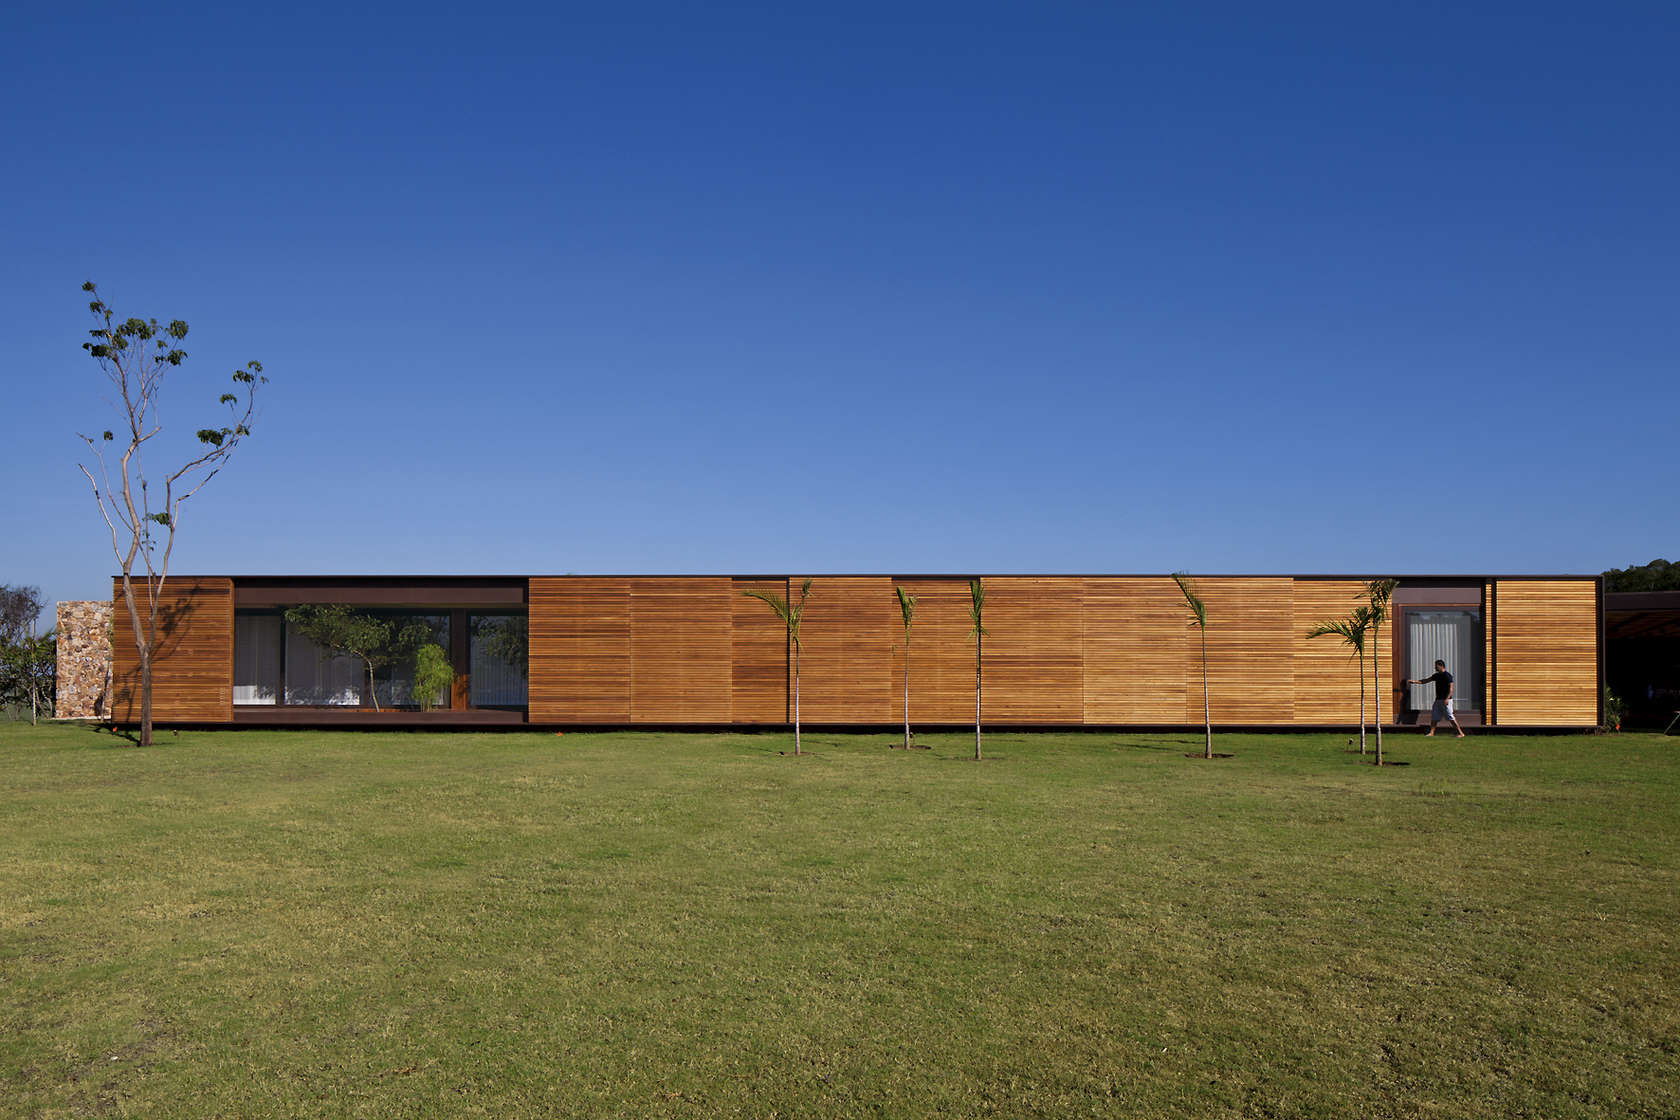 Bedrooms´ volume wooden façade, some blinds opened